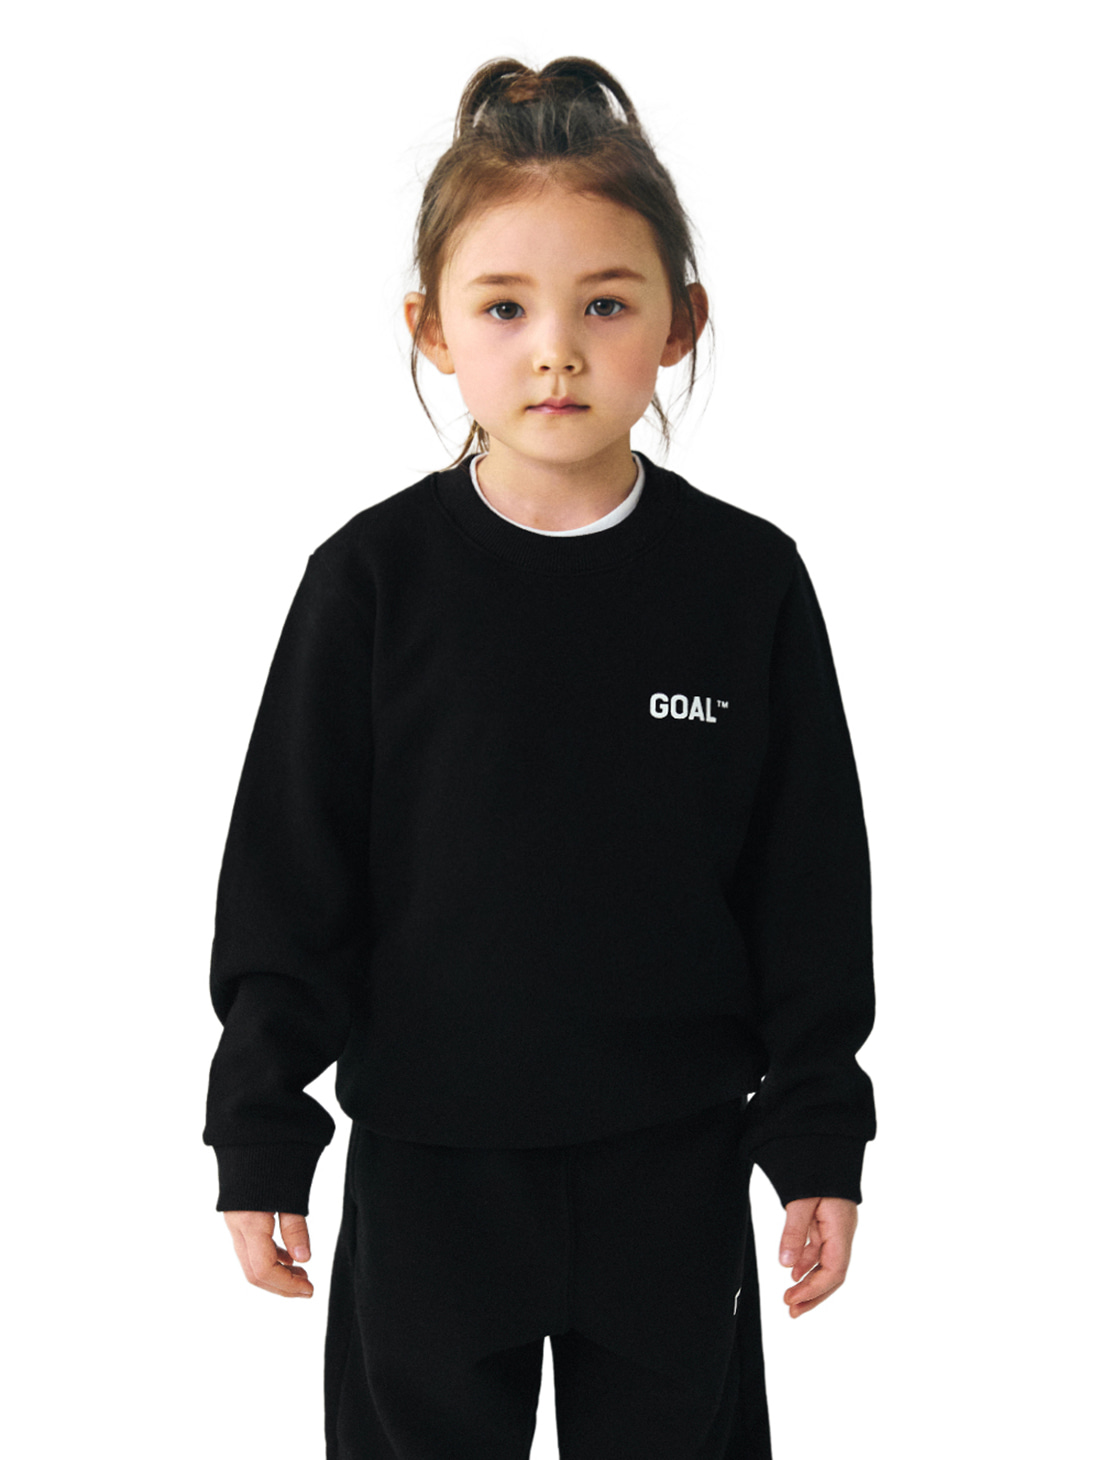 GOALSTUDIO (KIDS) BACK LOGO SWEATSHIRTS - BLACK